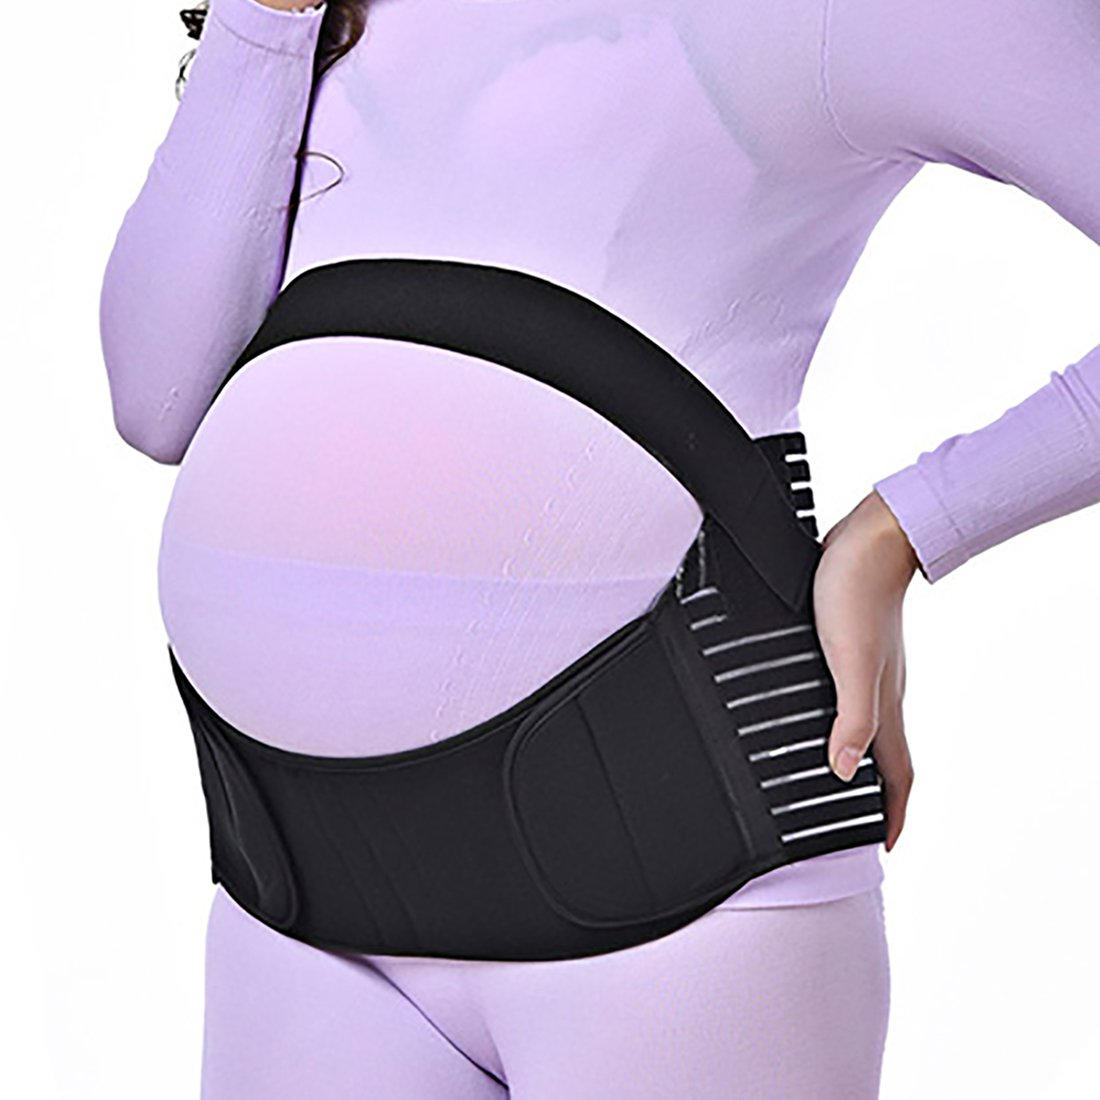 Hisret Maternity Belly Support Belts Pregnancy Waist Back Abdomen Band Fully Adjustable